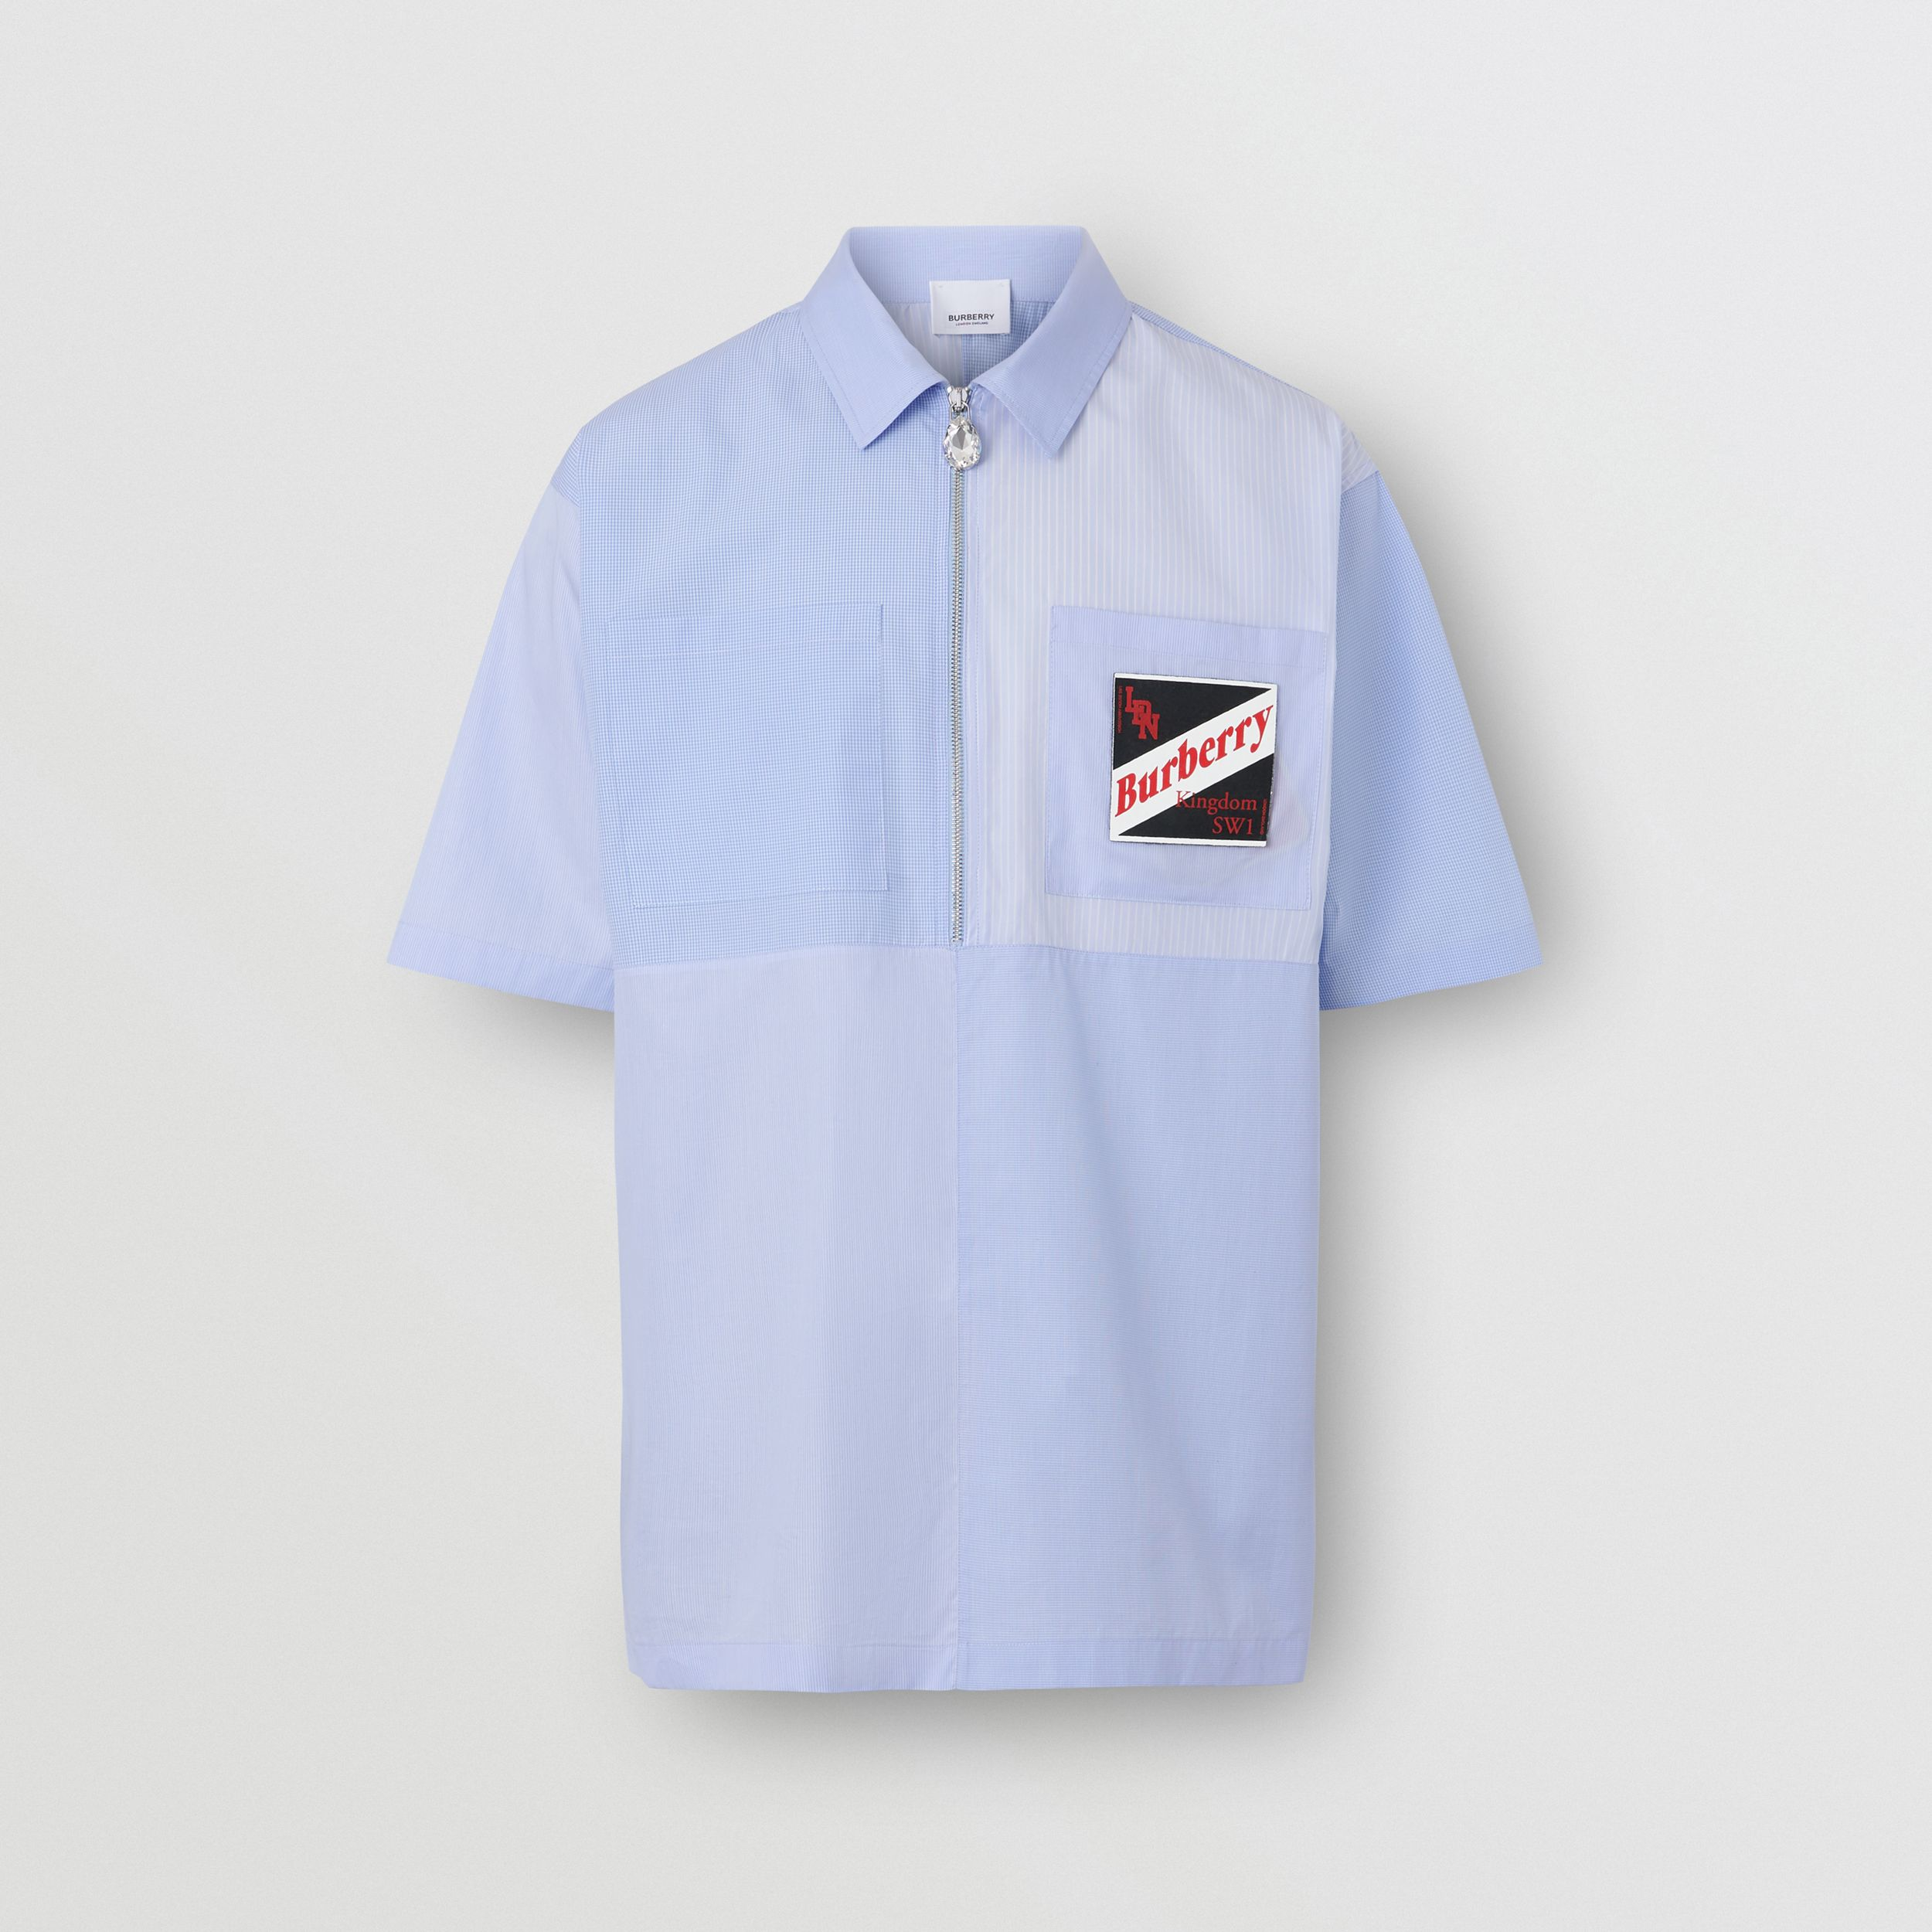 Short-sleeve Logo Graphic Patchwork Cotton Shirt in Pale Blue - Men | Burberry United Kingdom - 4